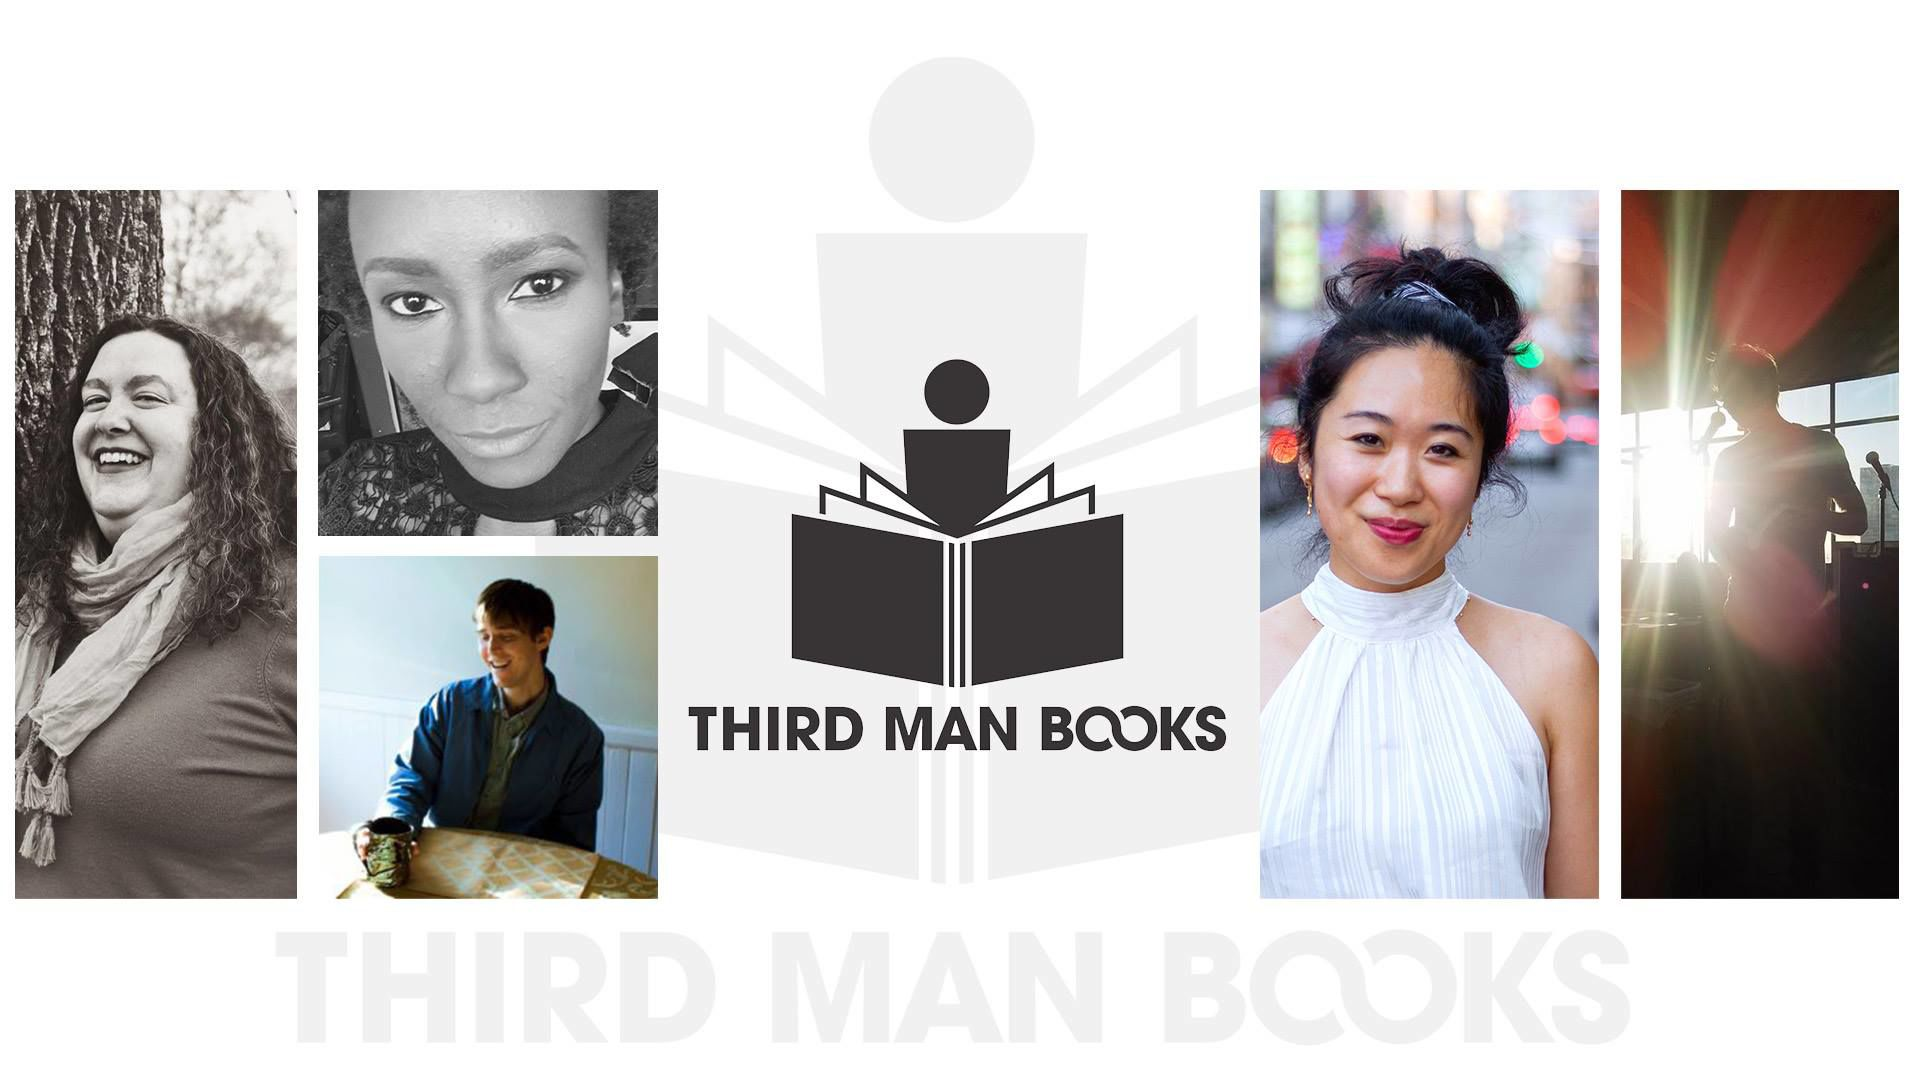 Third Man Books